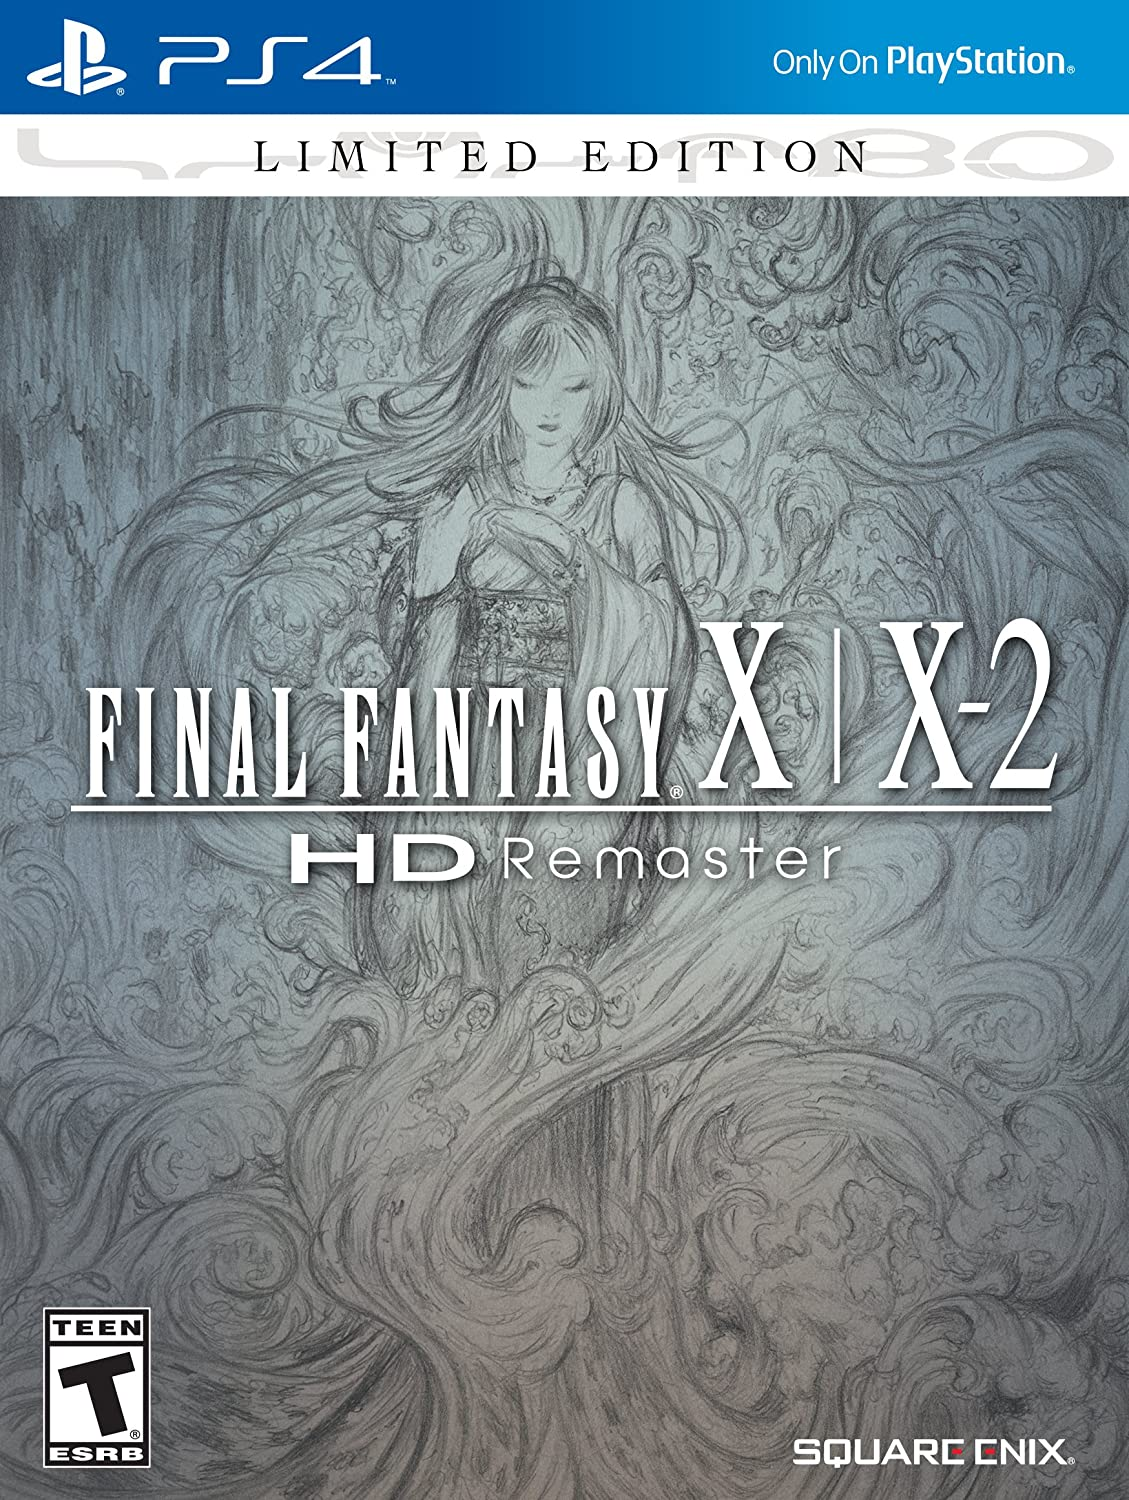 FINAL FANTASY X/X-2 HD Remaster Limited Edition - PlayStation 4 (輸入版) B00URE9SSE